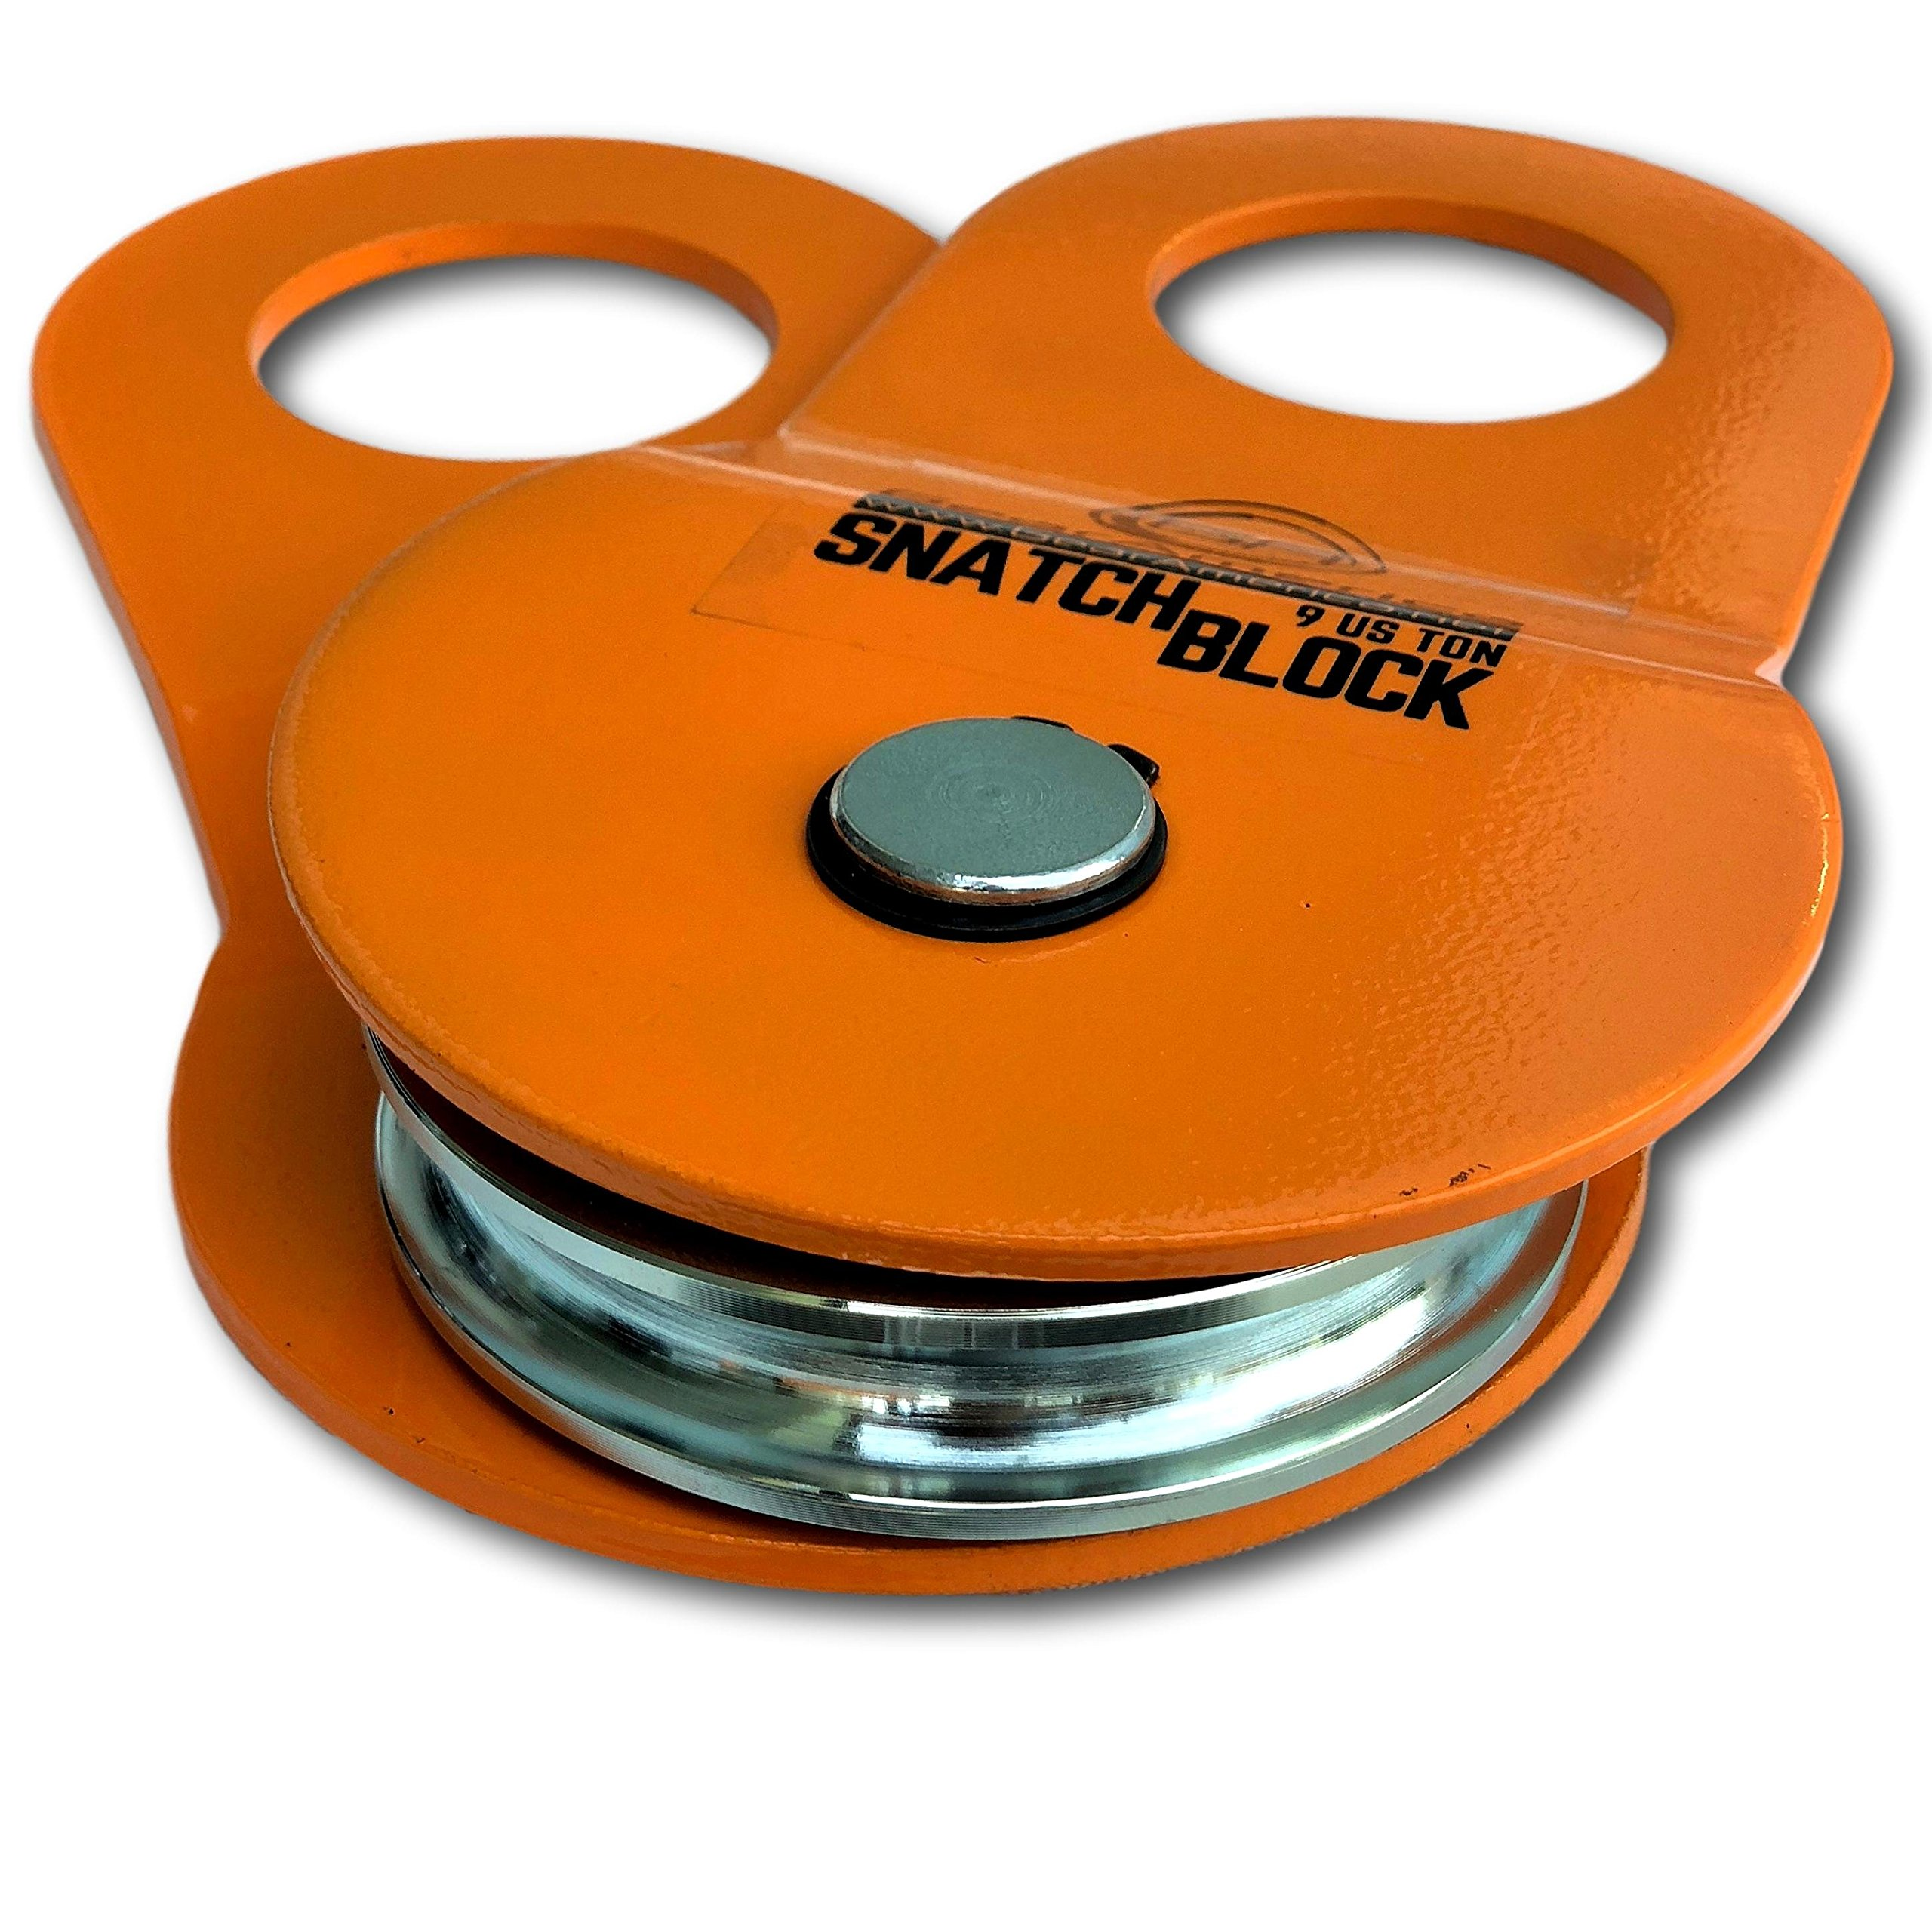 GearAmerica Snatch Block (9 US Ton) | Double Your Winch Capacity and Control Direction of Pull | Recover Stuck Vehicles with Ease | Heavy Duty Pulley System | Use with Shackles and Tree Saver Straps